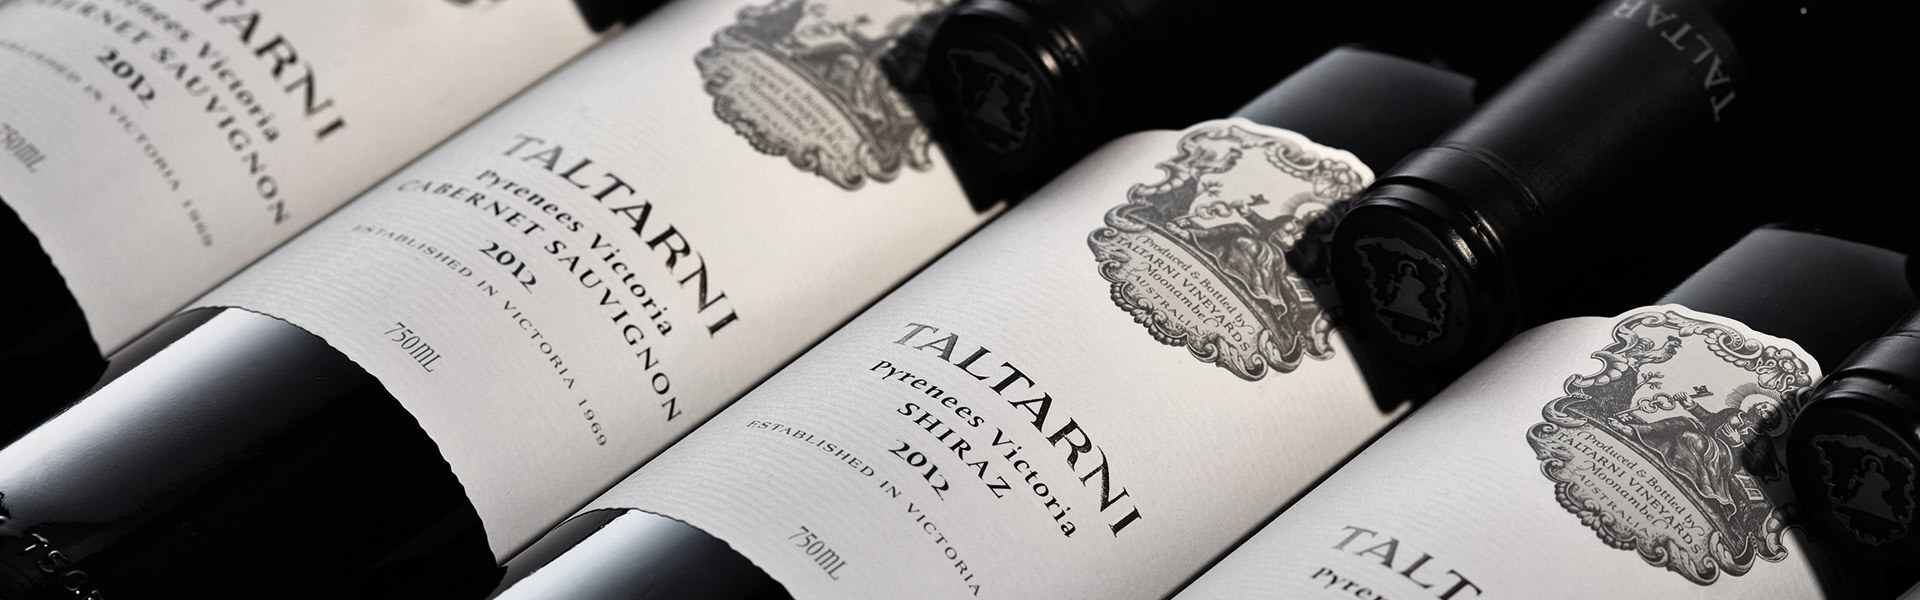 Find out more or buy Taltarni wines online at Wine Sellers Direct - Australia's premier independent wine merchants for more than 35 years.